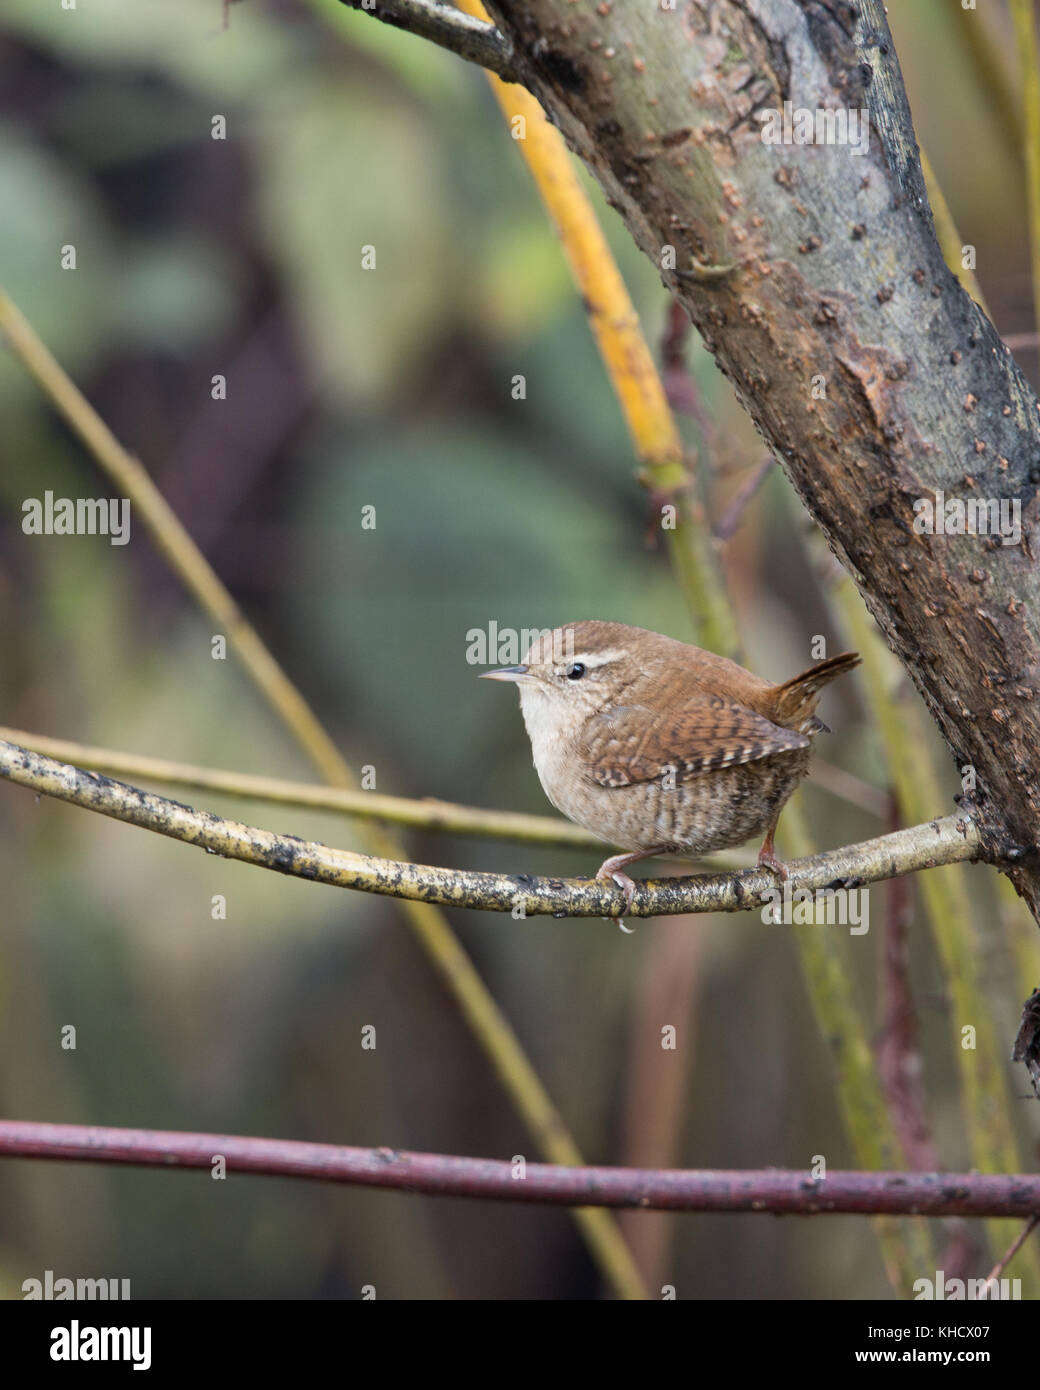 wren at london wetland centre - Stock Image